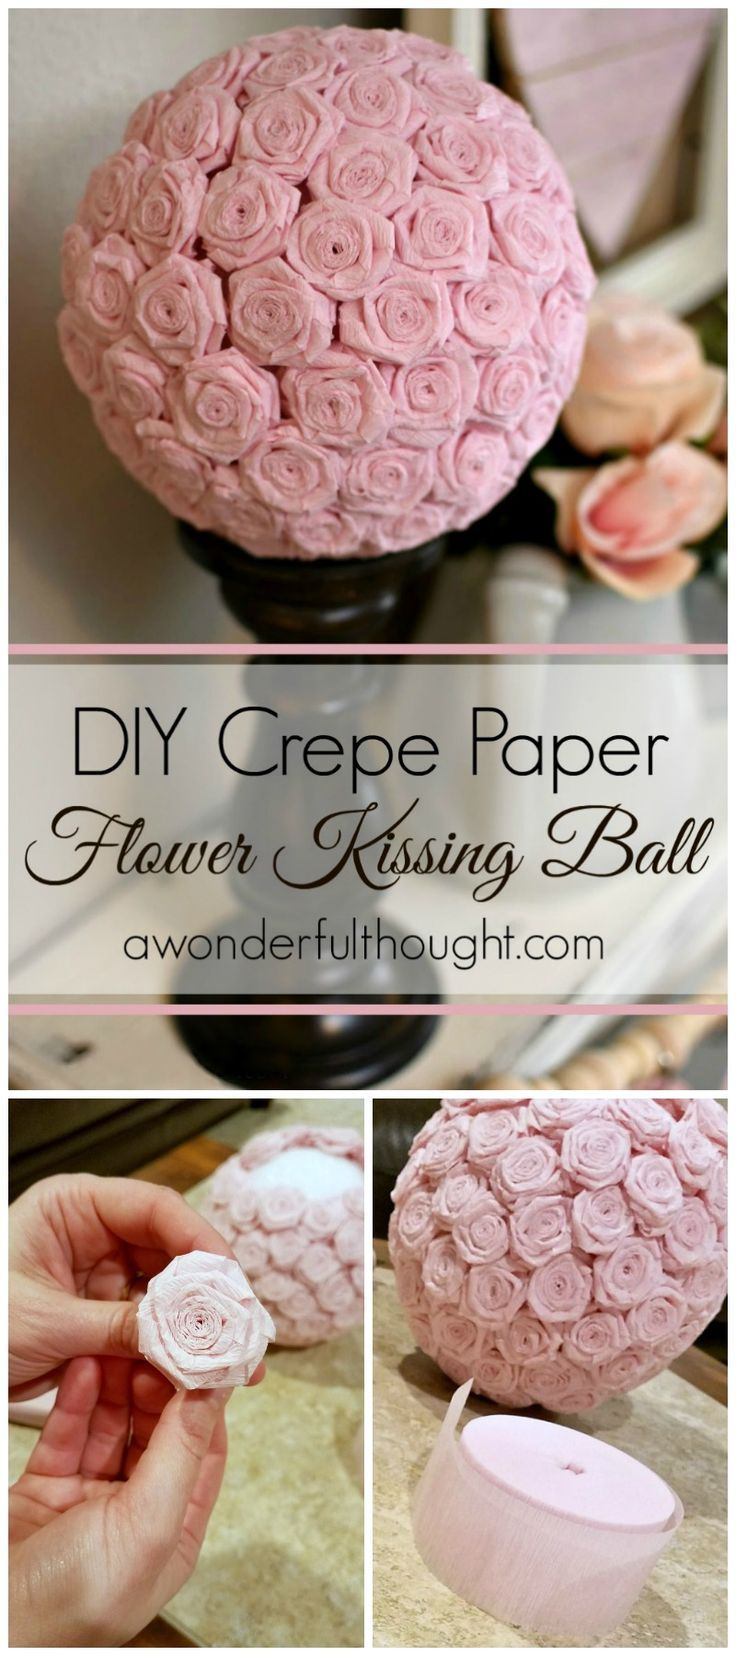 Diy Crepe Paper Flower Kissing Ball Crepe Paper Crepes And Flower